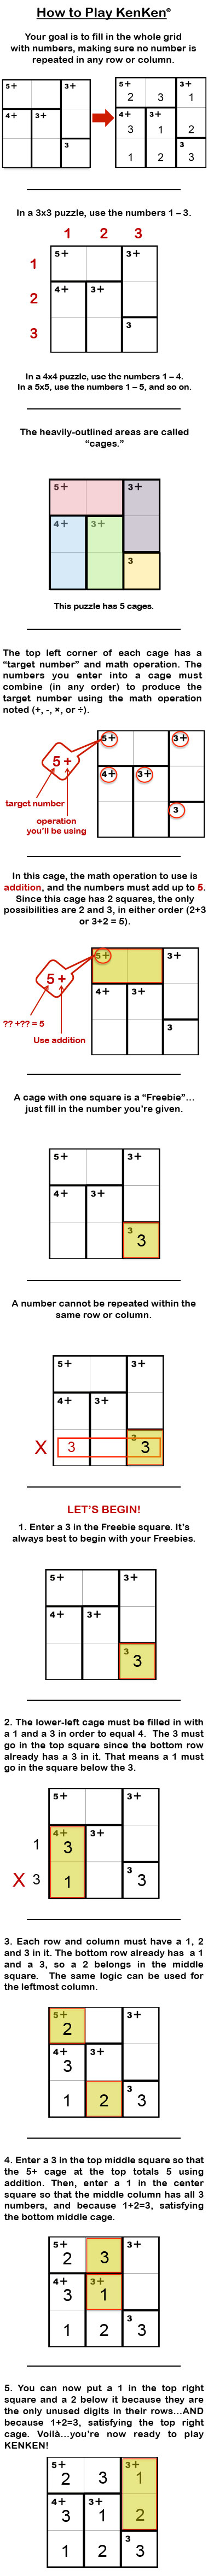 Kenken Puzzle Rules - How To Play This Amazing Puzzle & Brain Teaser! - Printable Kenken Puzzle 7X7